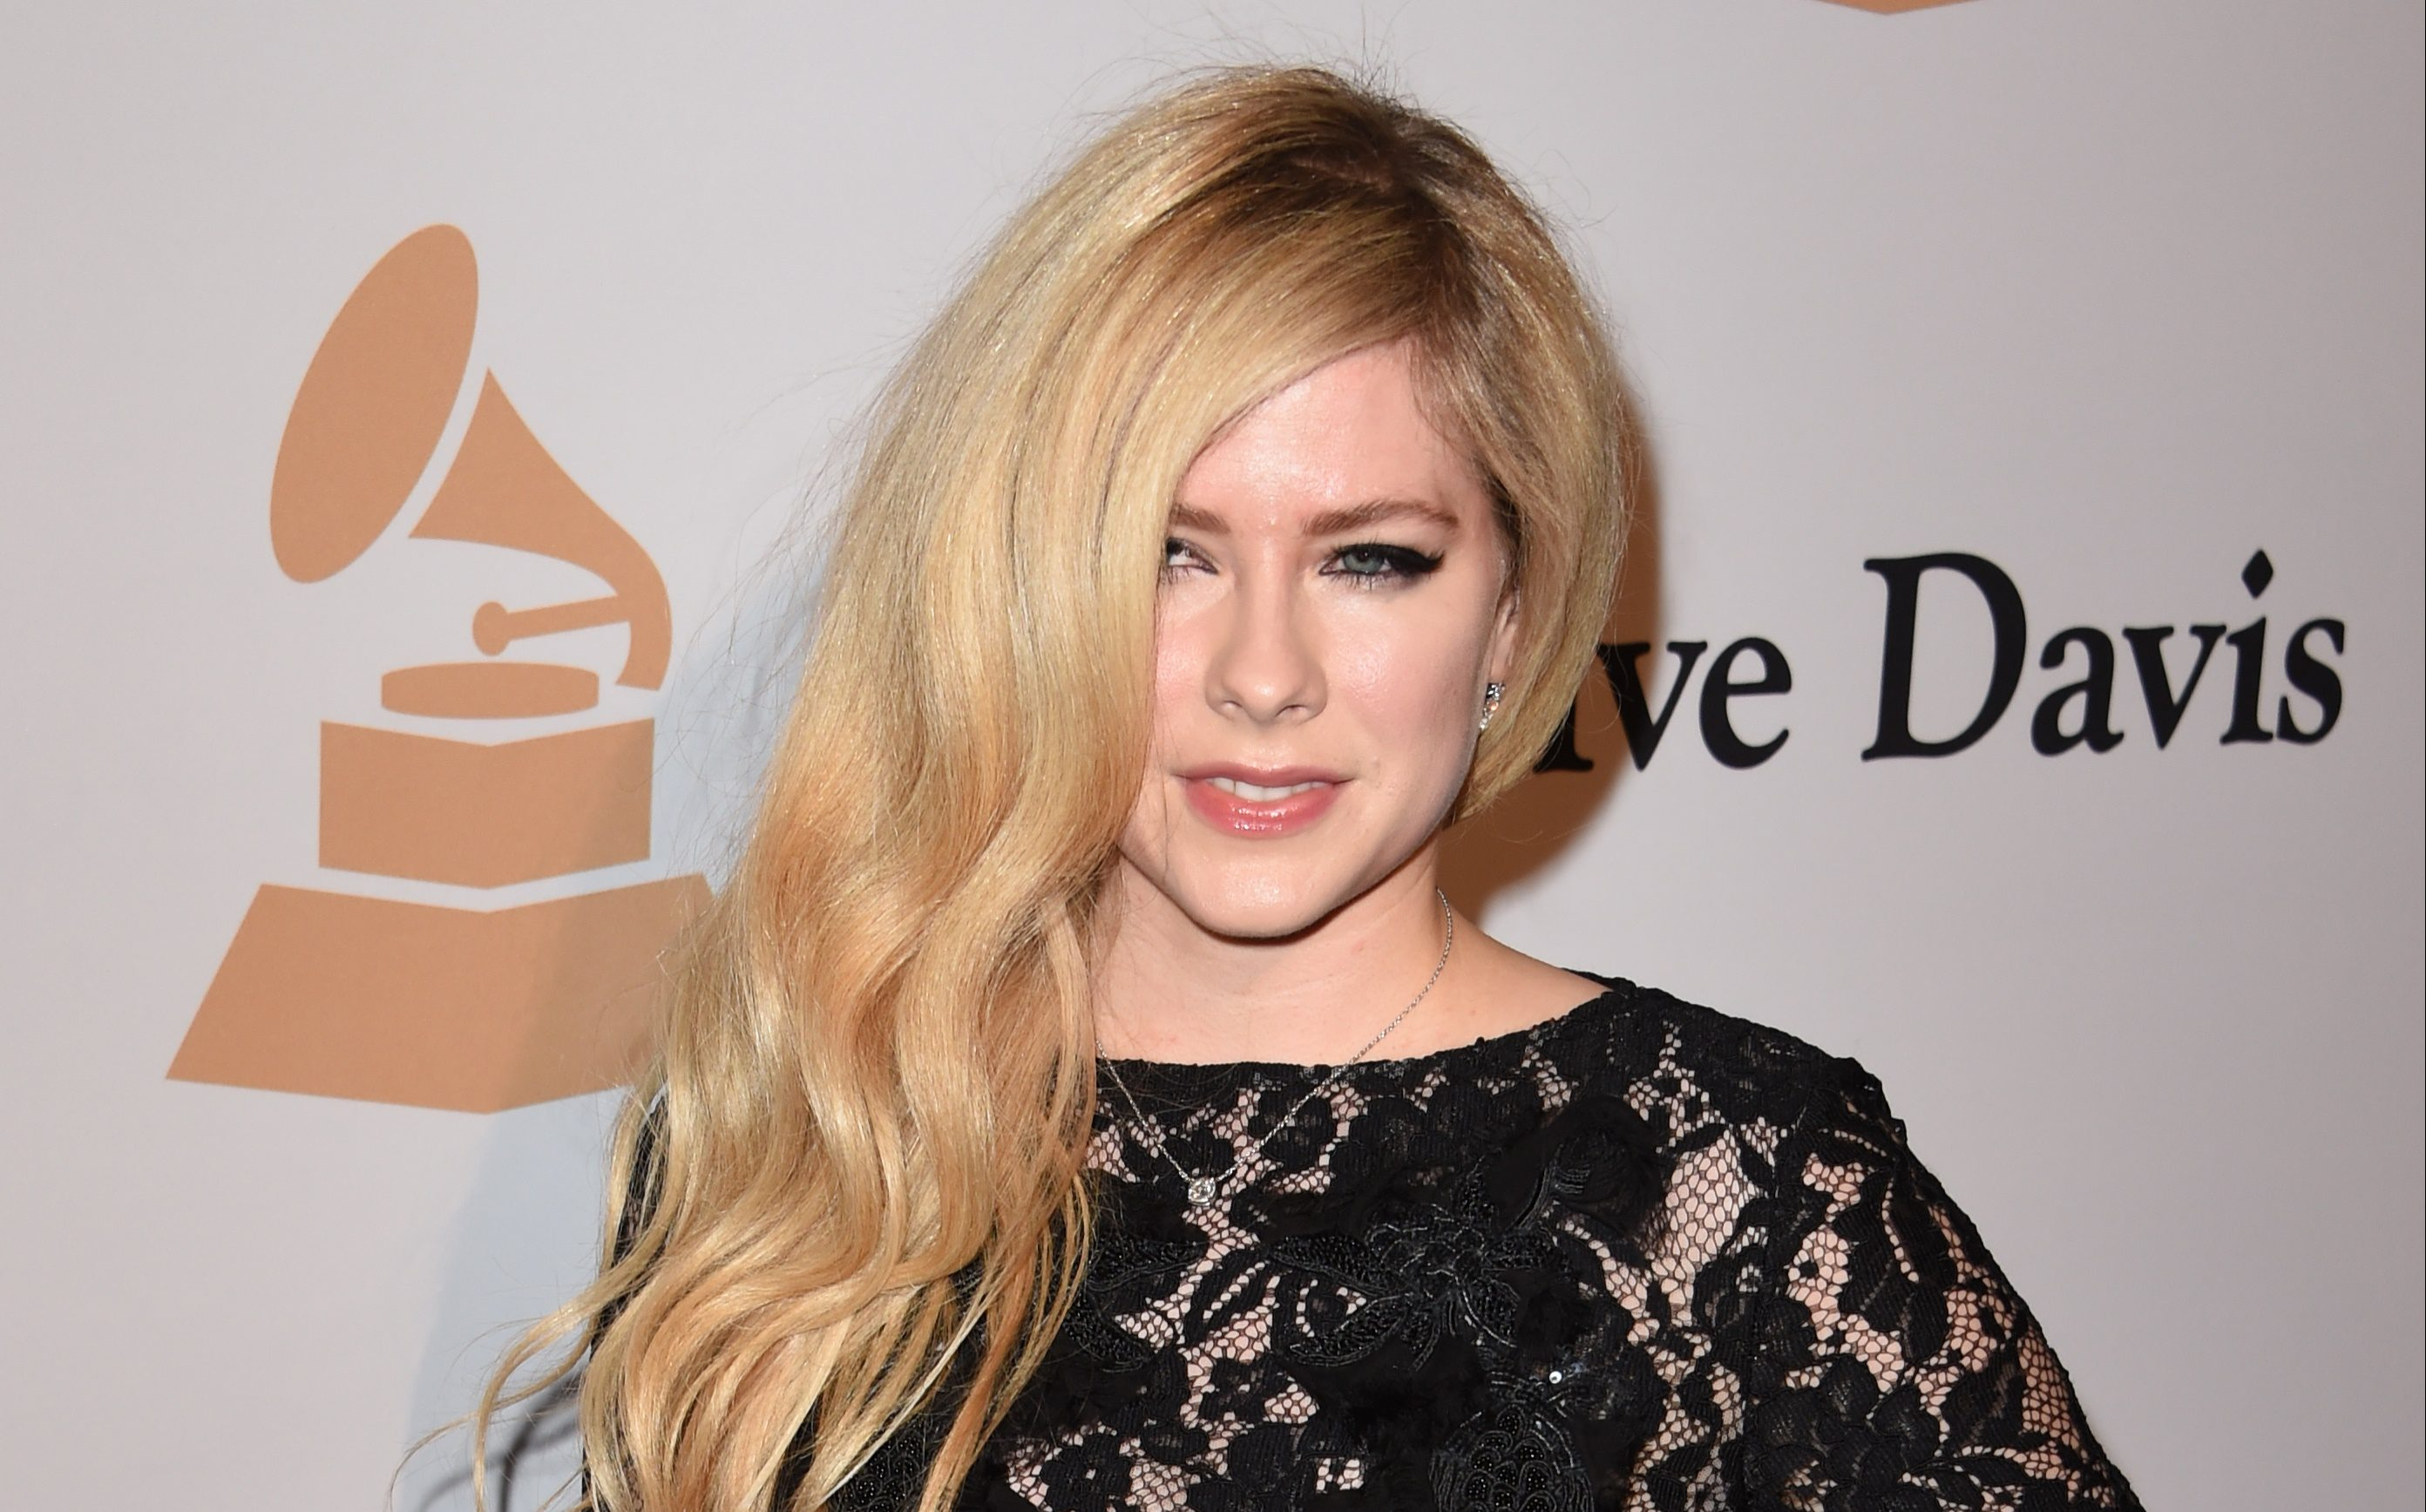 What happened to Avril Lavigne? Conspiracy theory that the singer is dead life is back again